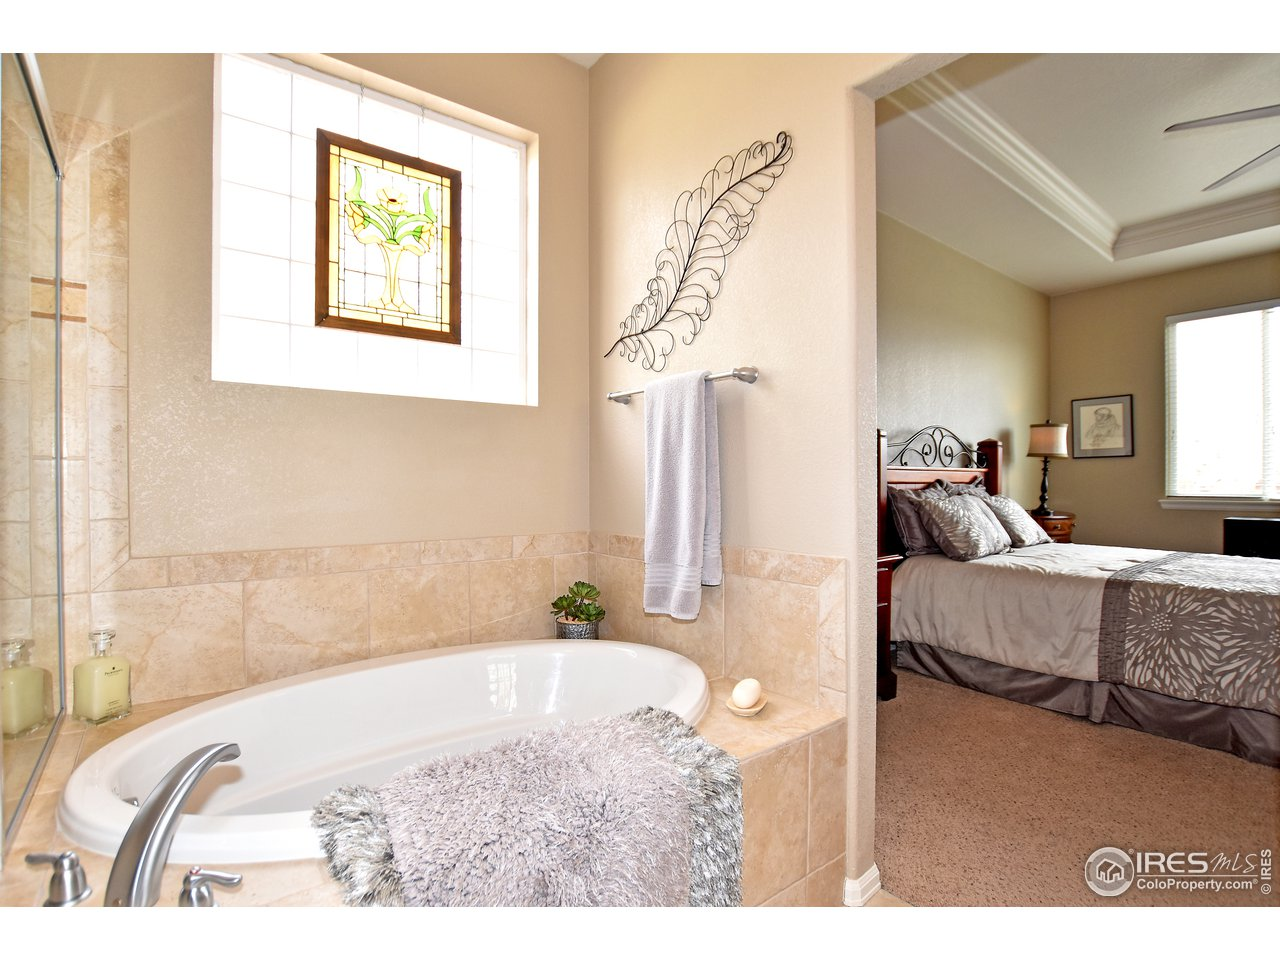 Enjoy soaking in this great sized soaker tub!